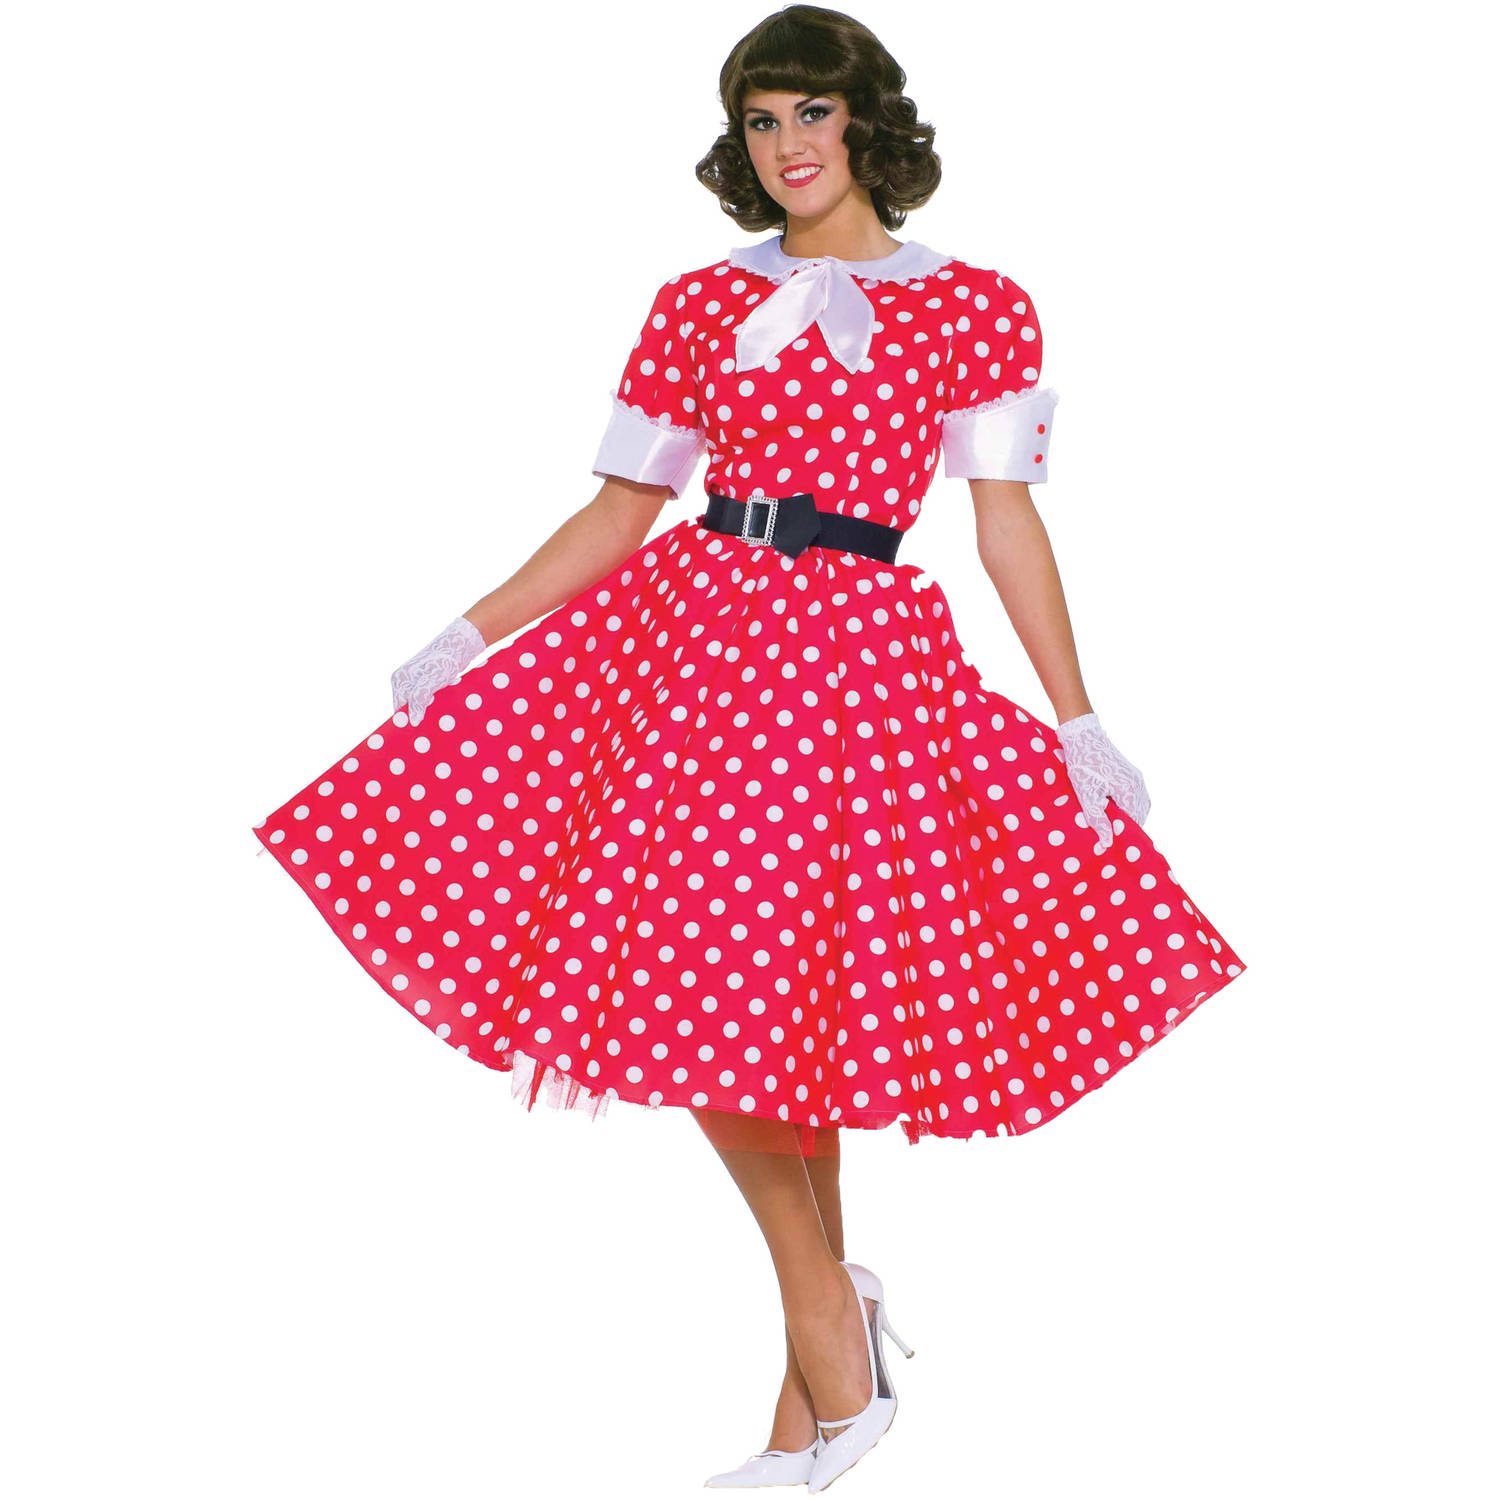 50s Housewife Women's Adult Halloween Costume, One Size, 8-14